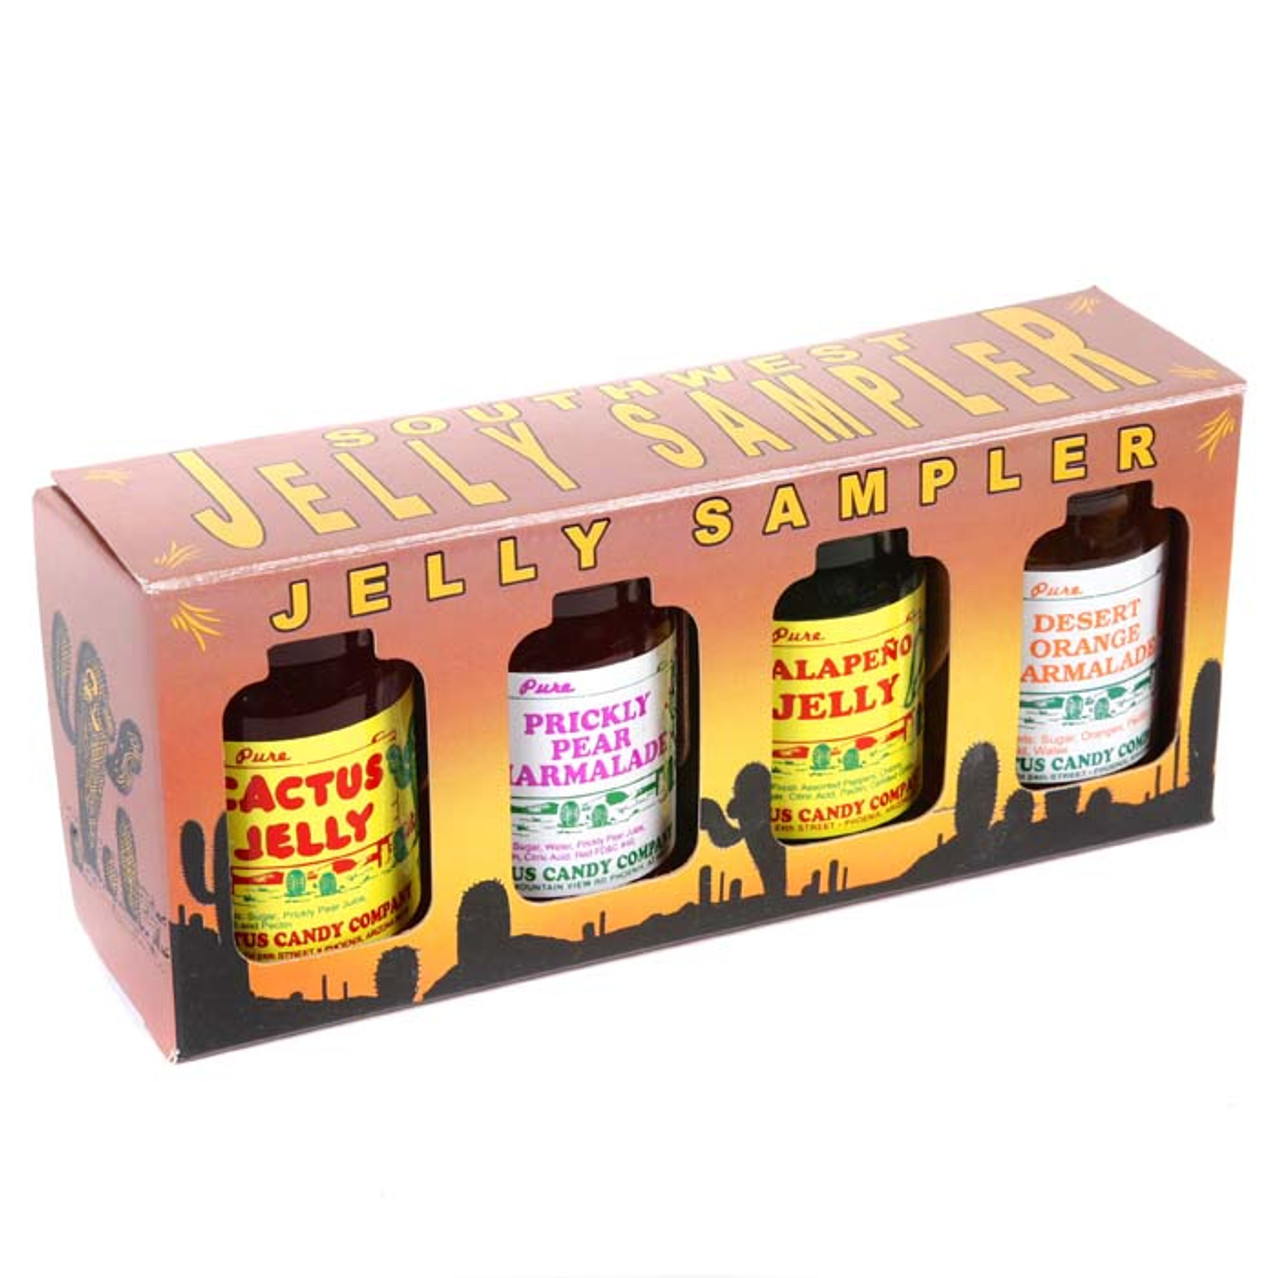 Jelly Gift 4 Pack-Case of 3